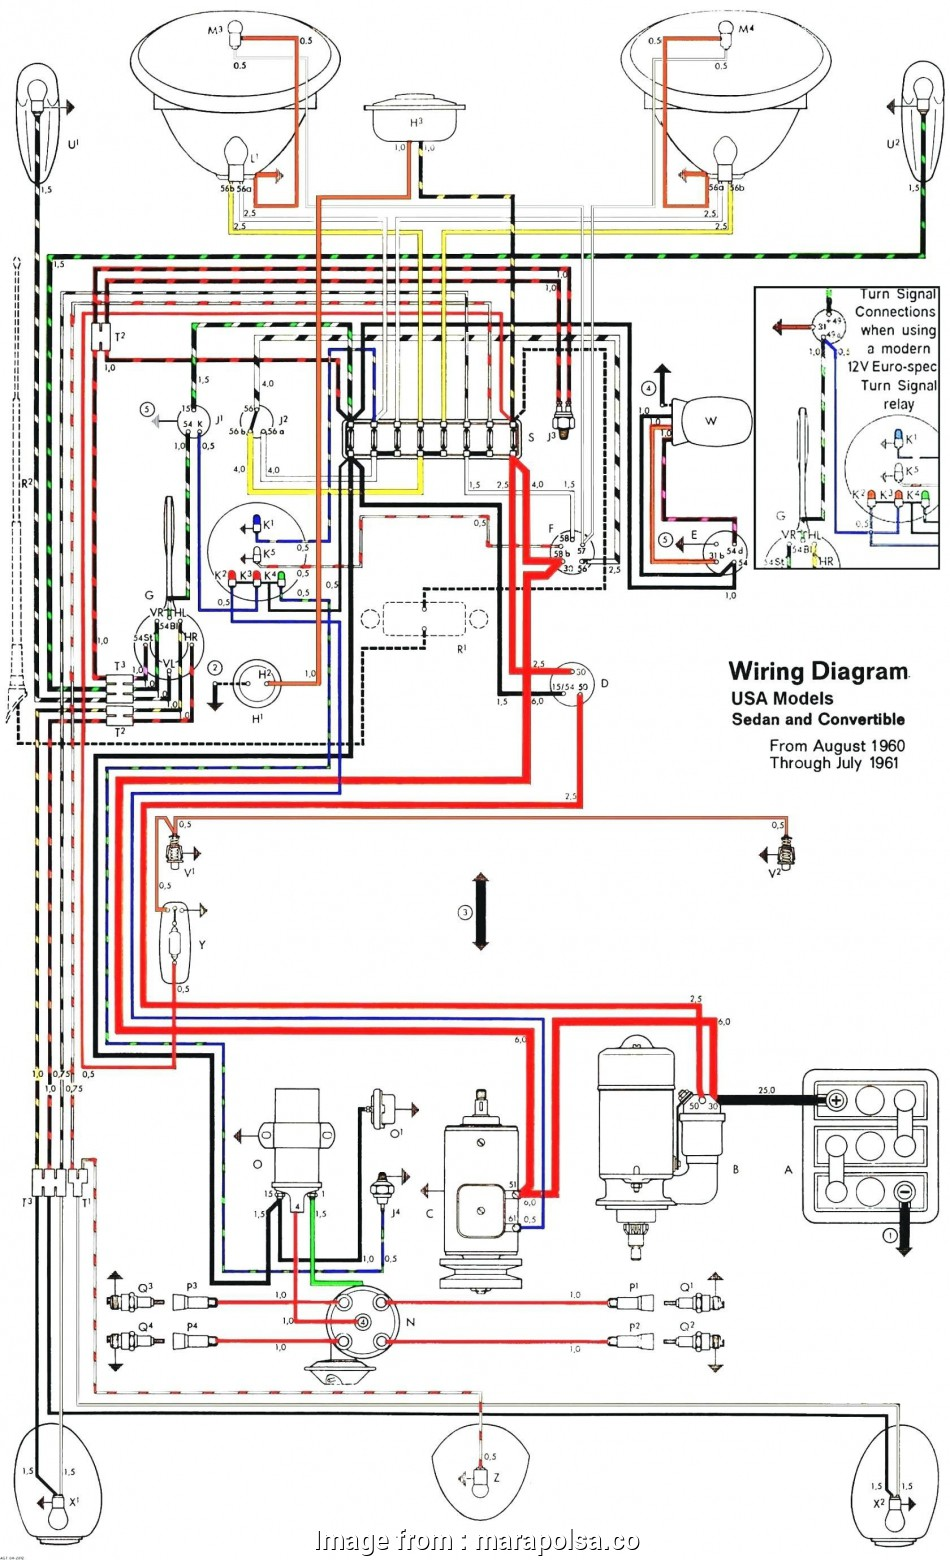 Legrand Dimmer Wiring Diagram from tonetastic.info